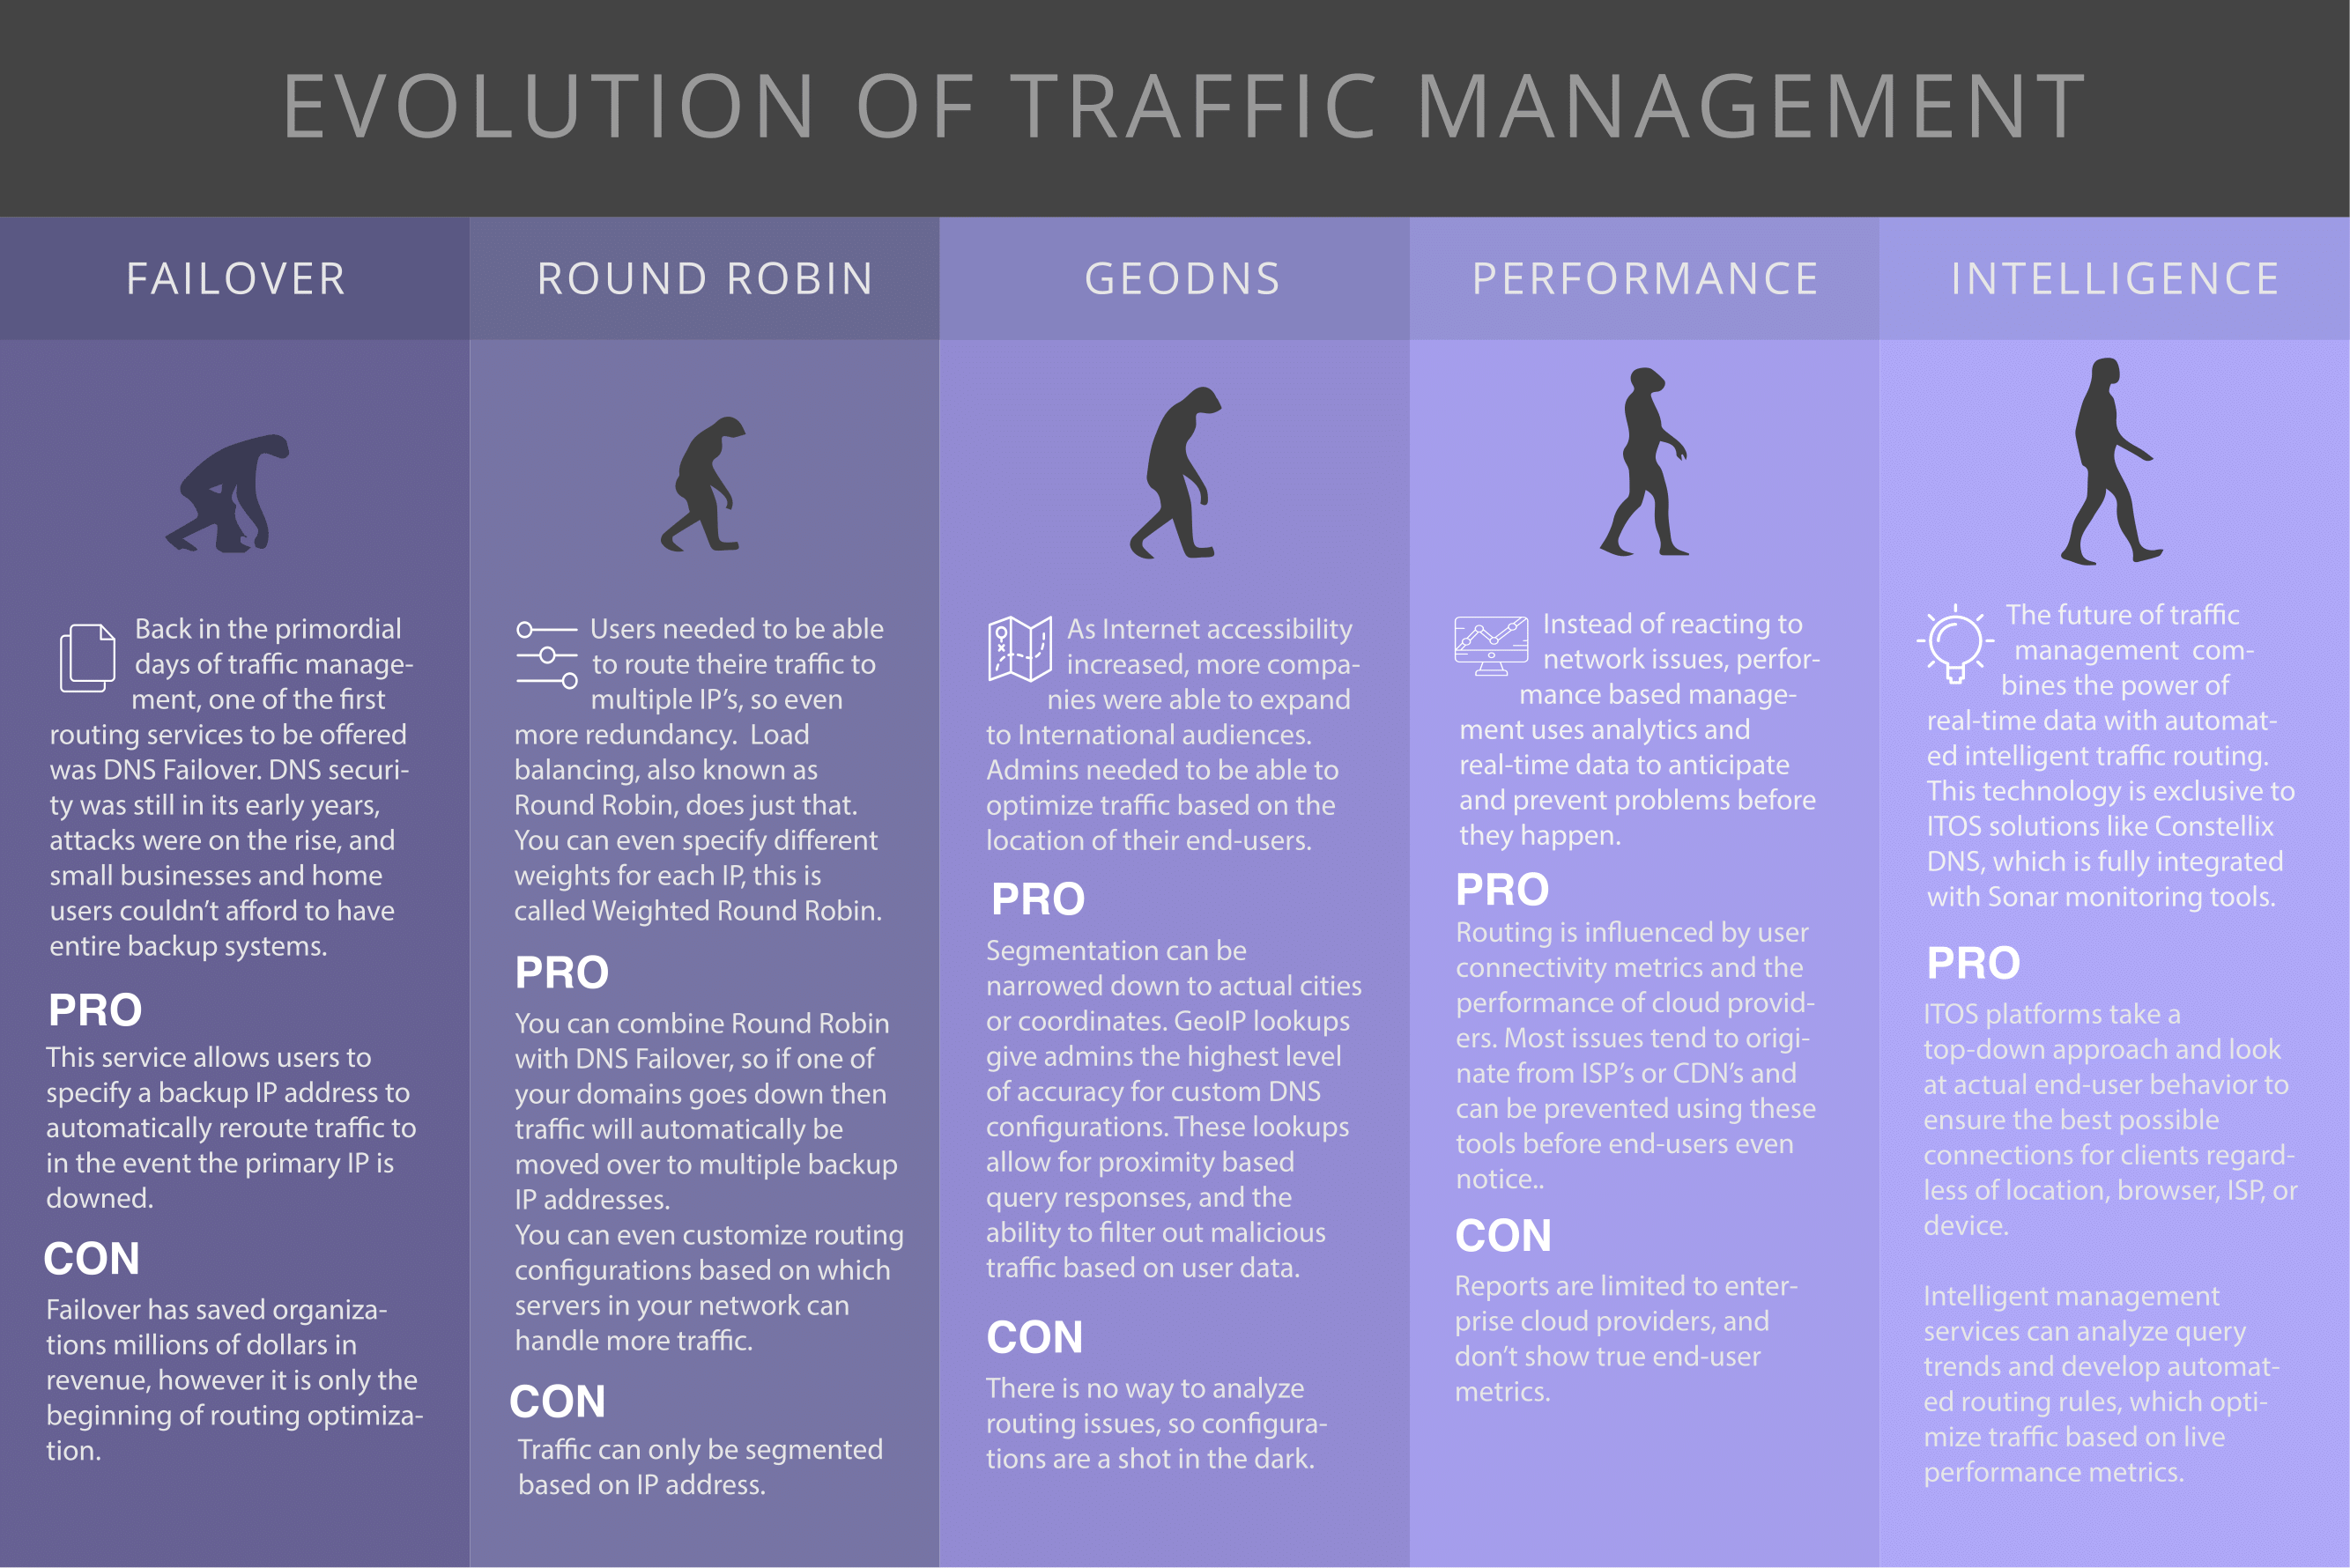 Evolution of Traffic Management Infographic